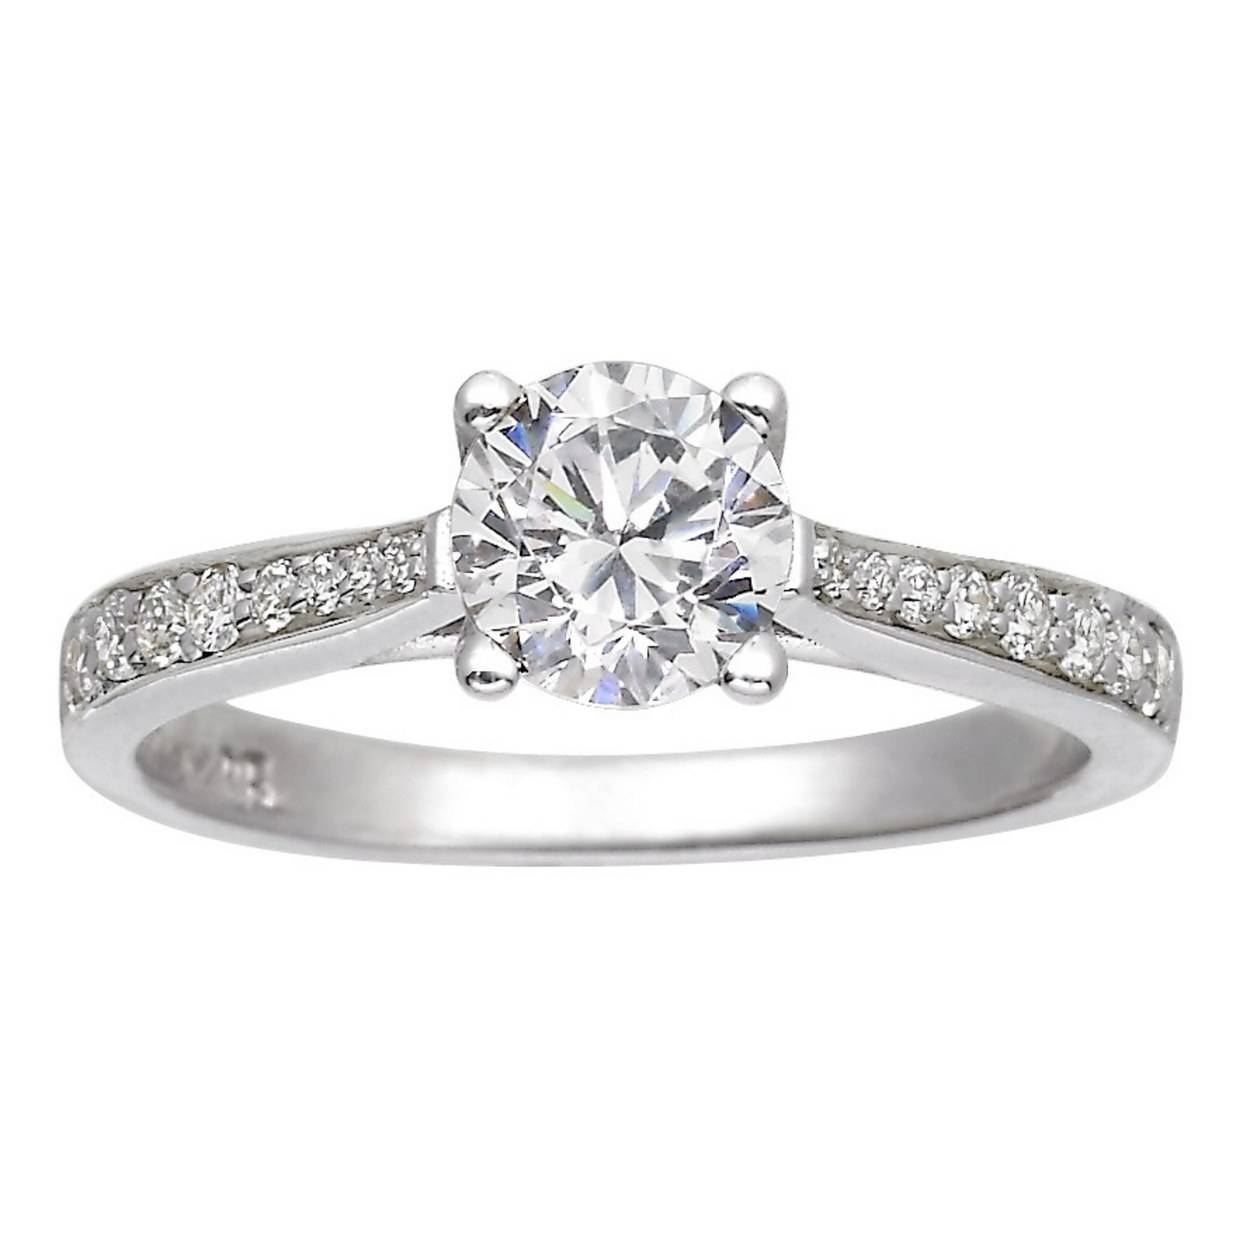 62 Diamond Engagement Rings Under $5,000 | Glamour For Real Diamond Wedding Rings (Gallery 4 of 15)